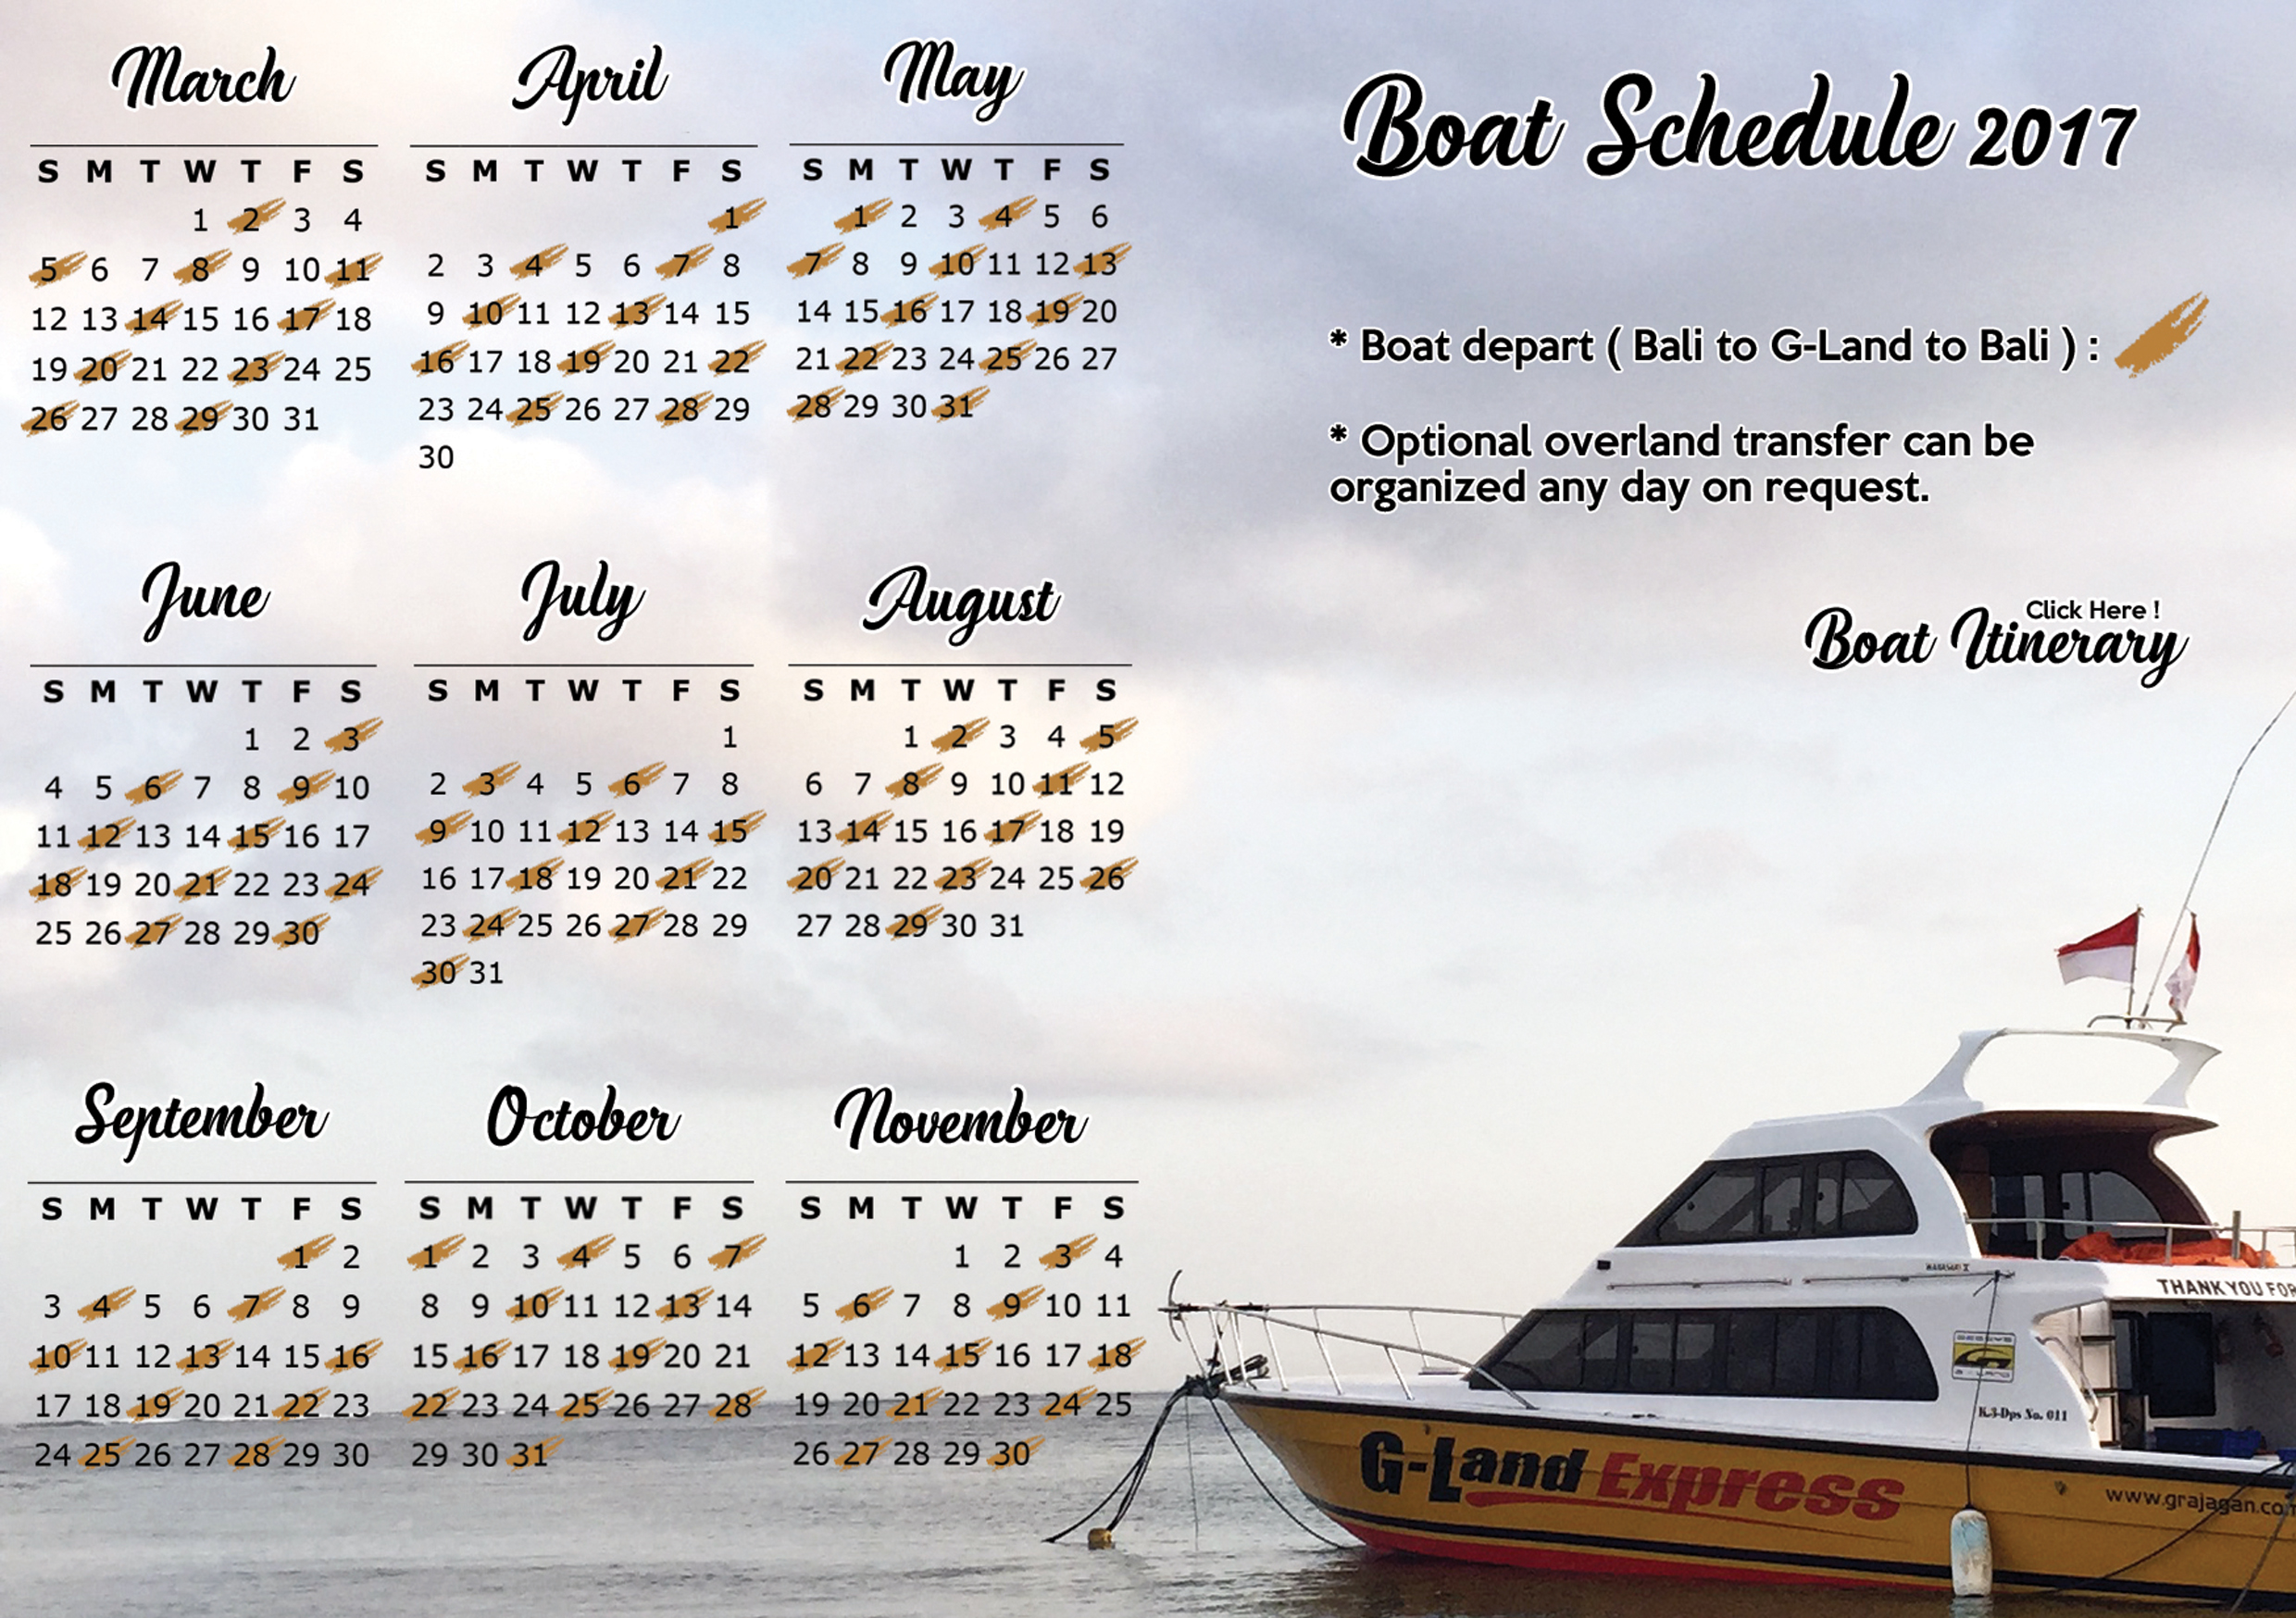 G-LAND BOBBY'S SURF CAMP BOAT SCHEDULE 2017